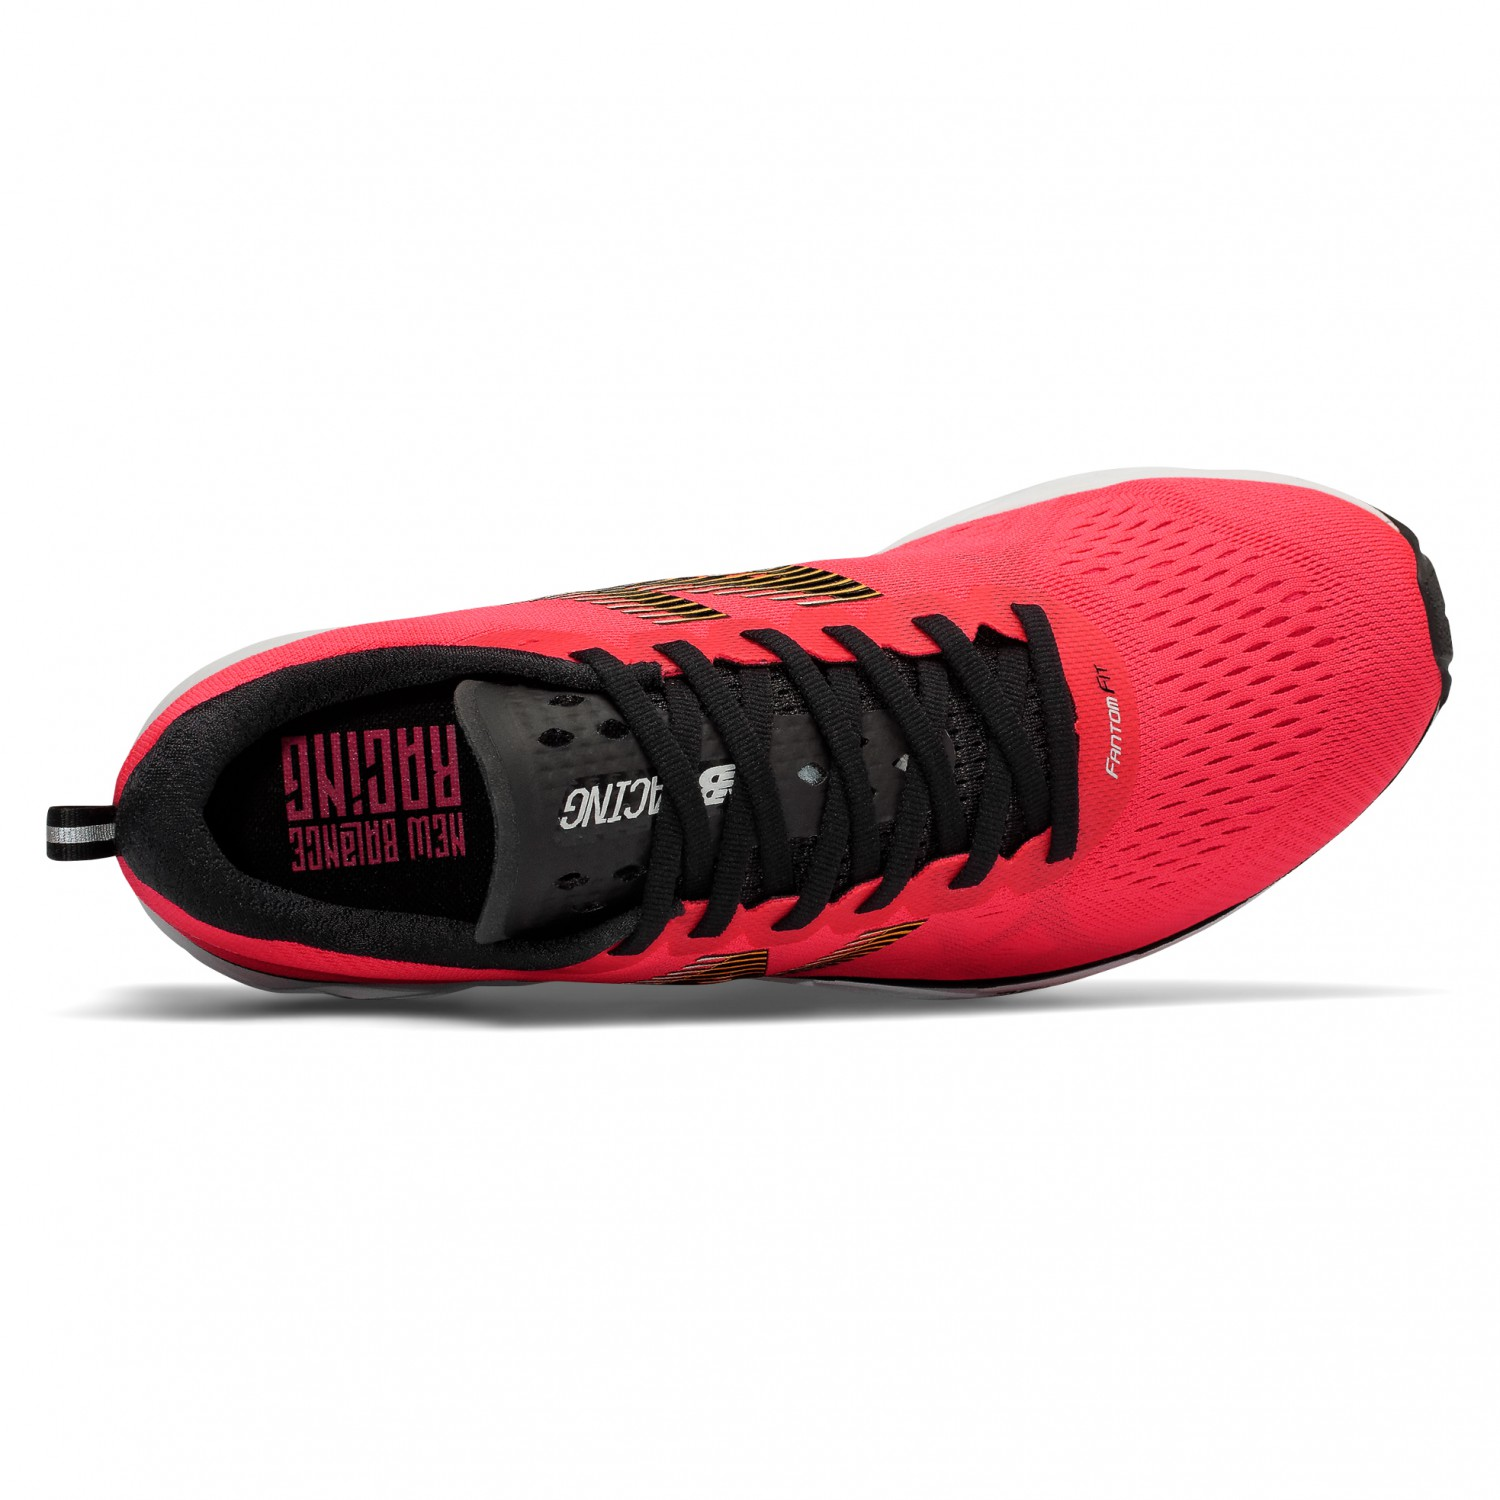 new product fcde6 aaf19 New Balance 1500 V4 - Running Shoes Men's | Buy online ...